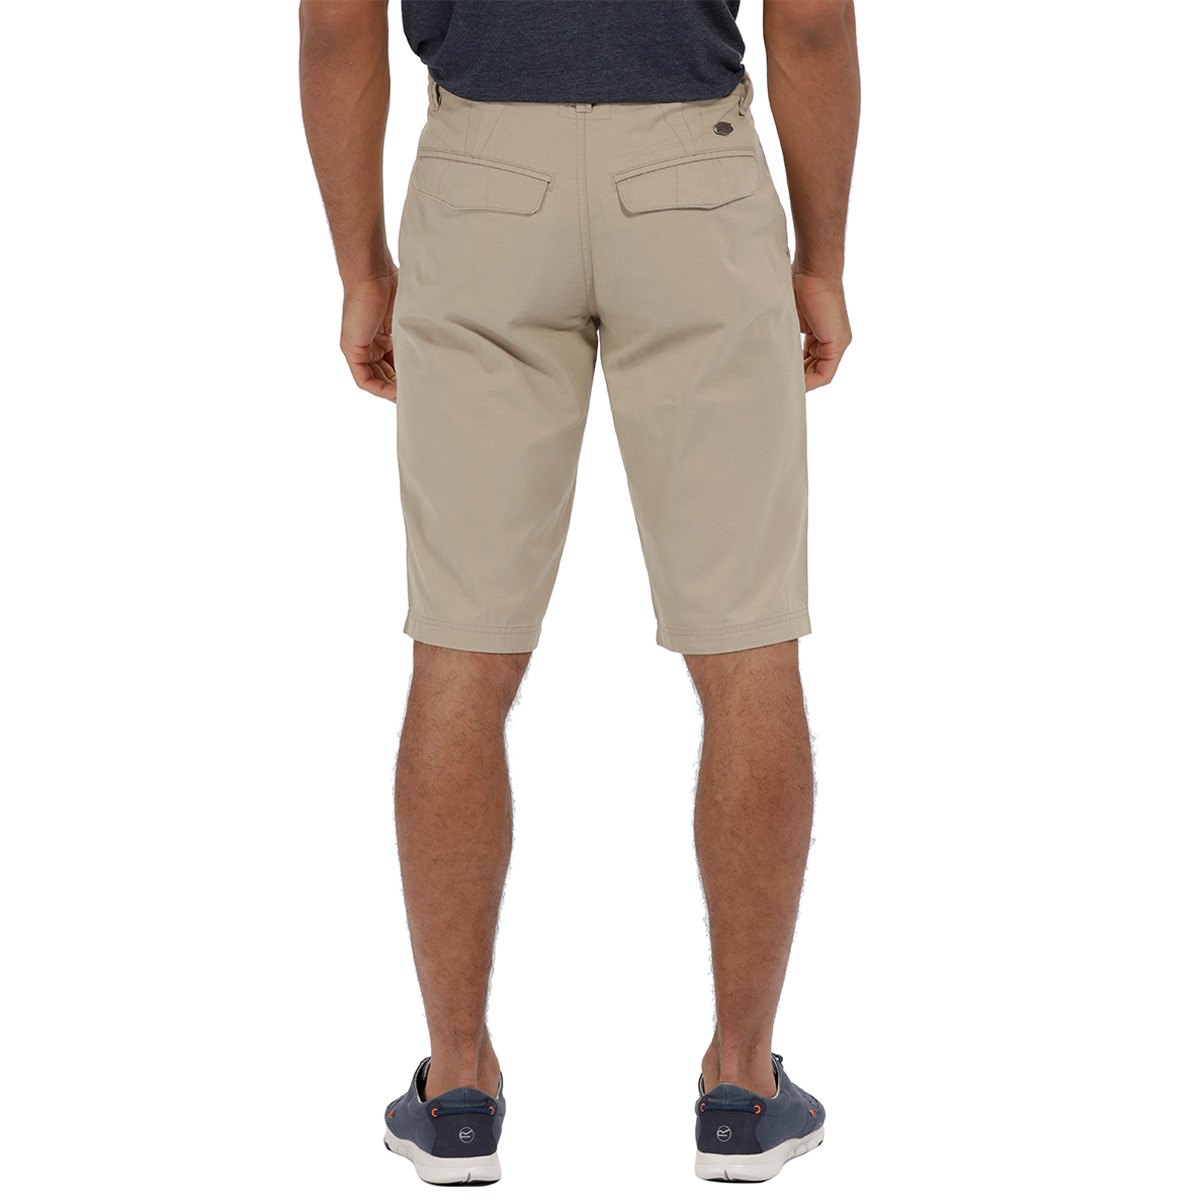 Regatta Mens Salvador Five Pocket Chino Coolweave Cotton Shorts 55/% OFF RRP